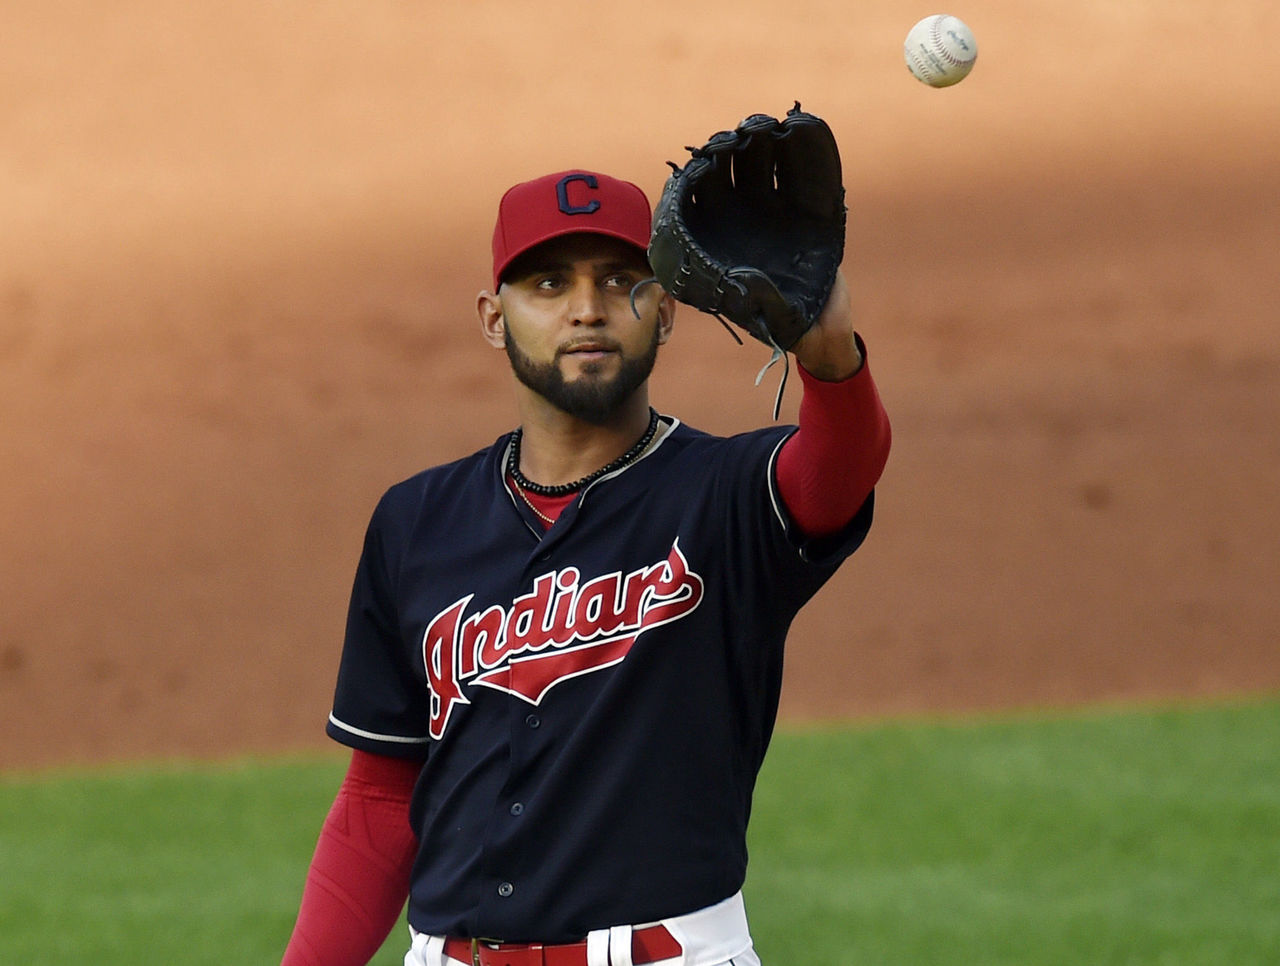 Cropped_2017-05-16t231624z_1769610808_nocid_rtrmadp_3_mlb-tampa-bay-rays-at-cleveland-indians